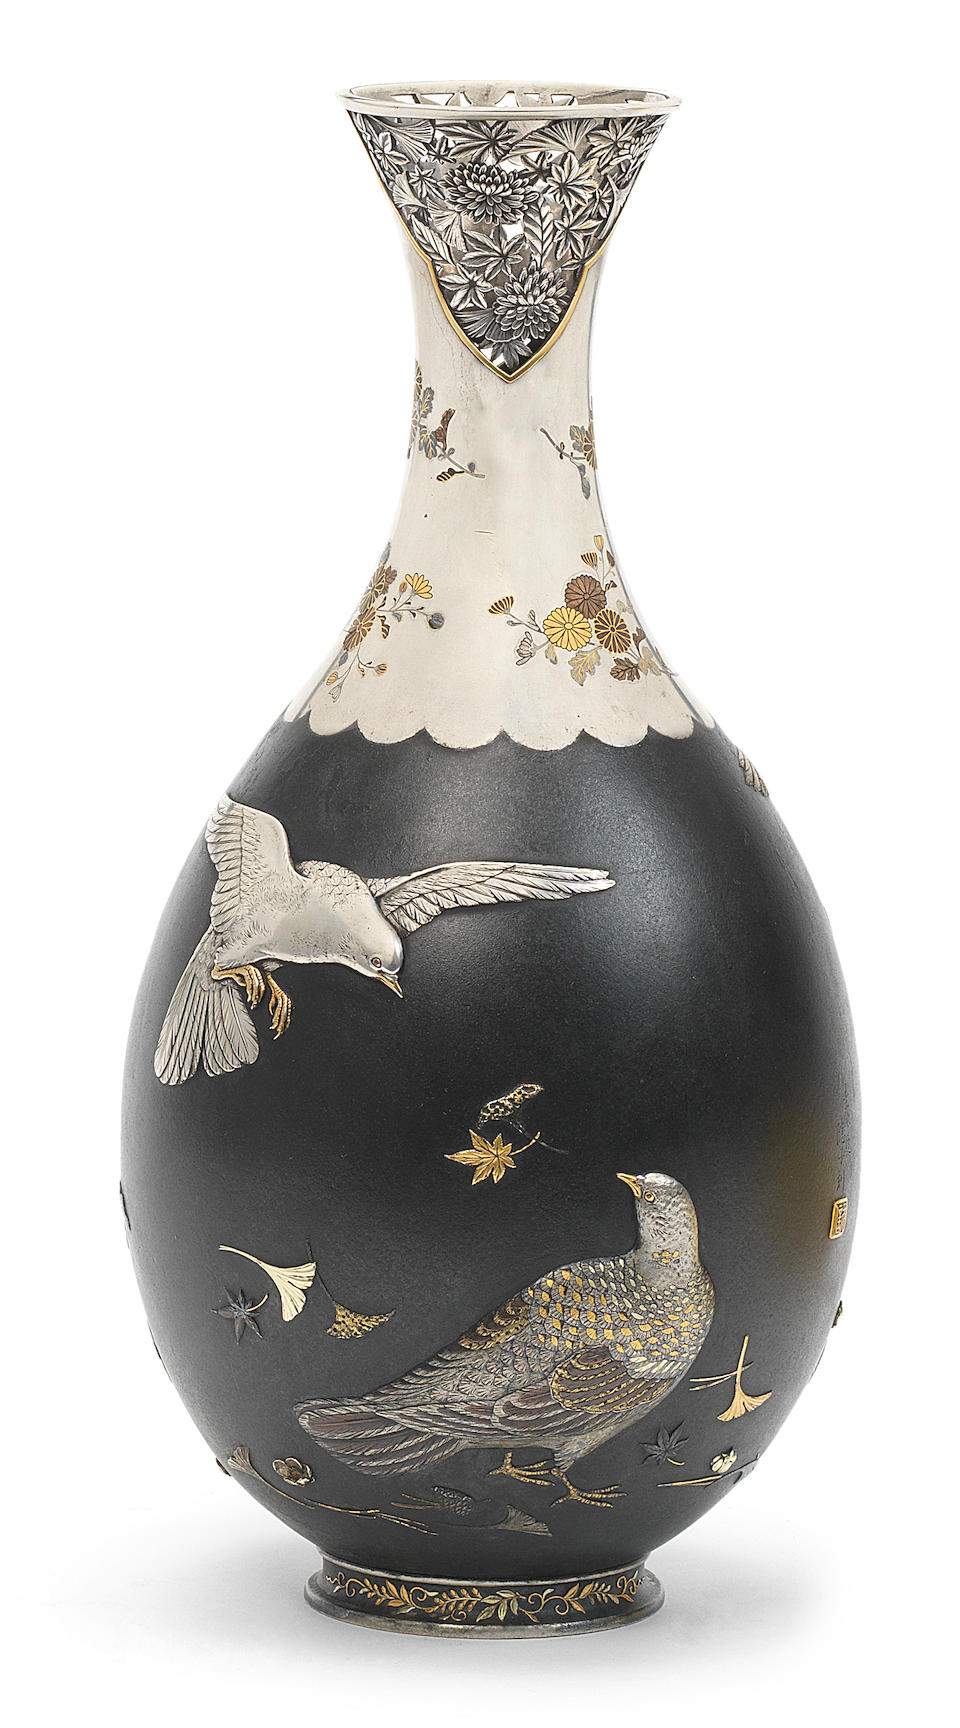 An inlaid silver and shakudo pear-shaped vase  By Yamada Motonobu (1847-1897) for the Ozeki Company, Meiji era (1868-1912), late 19th century